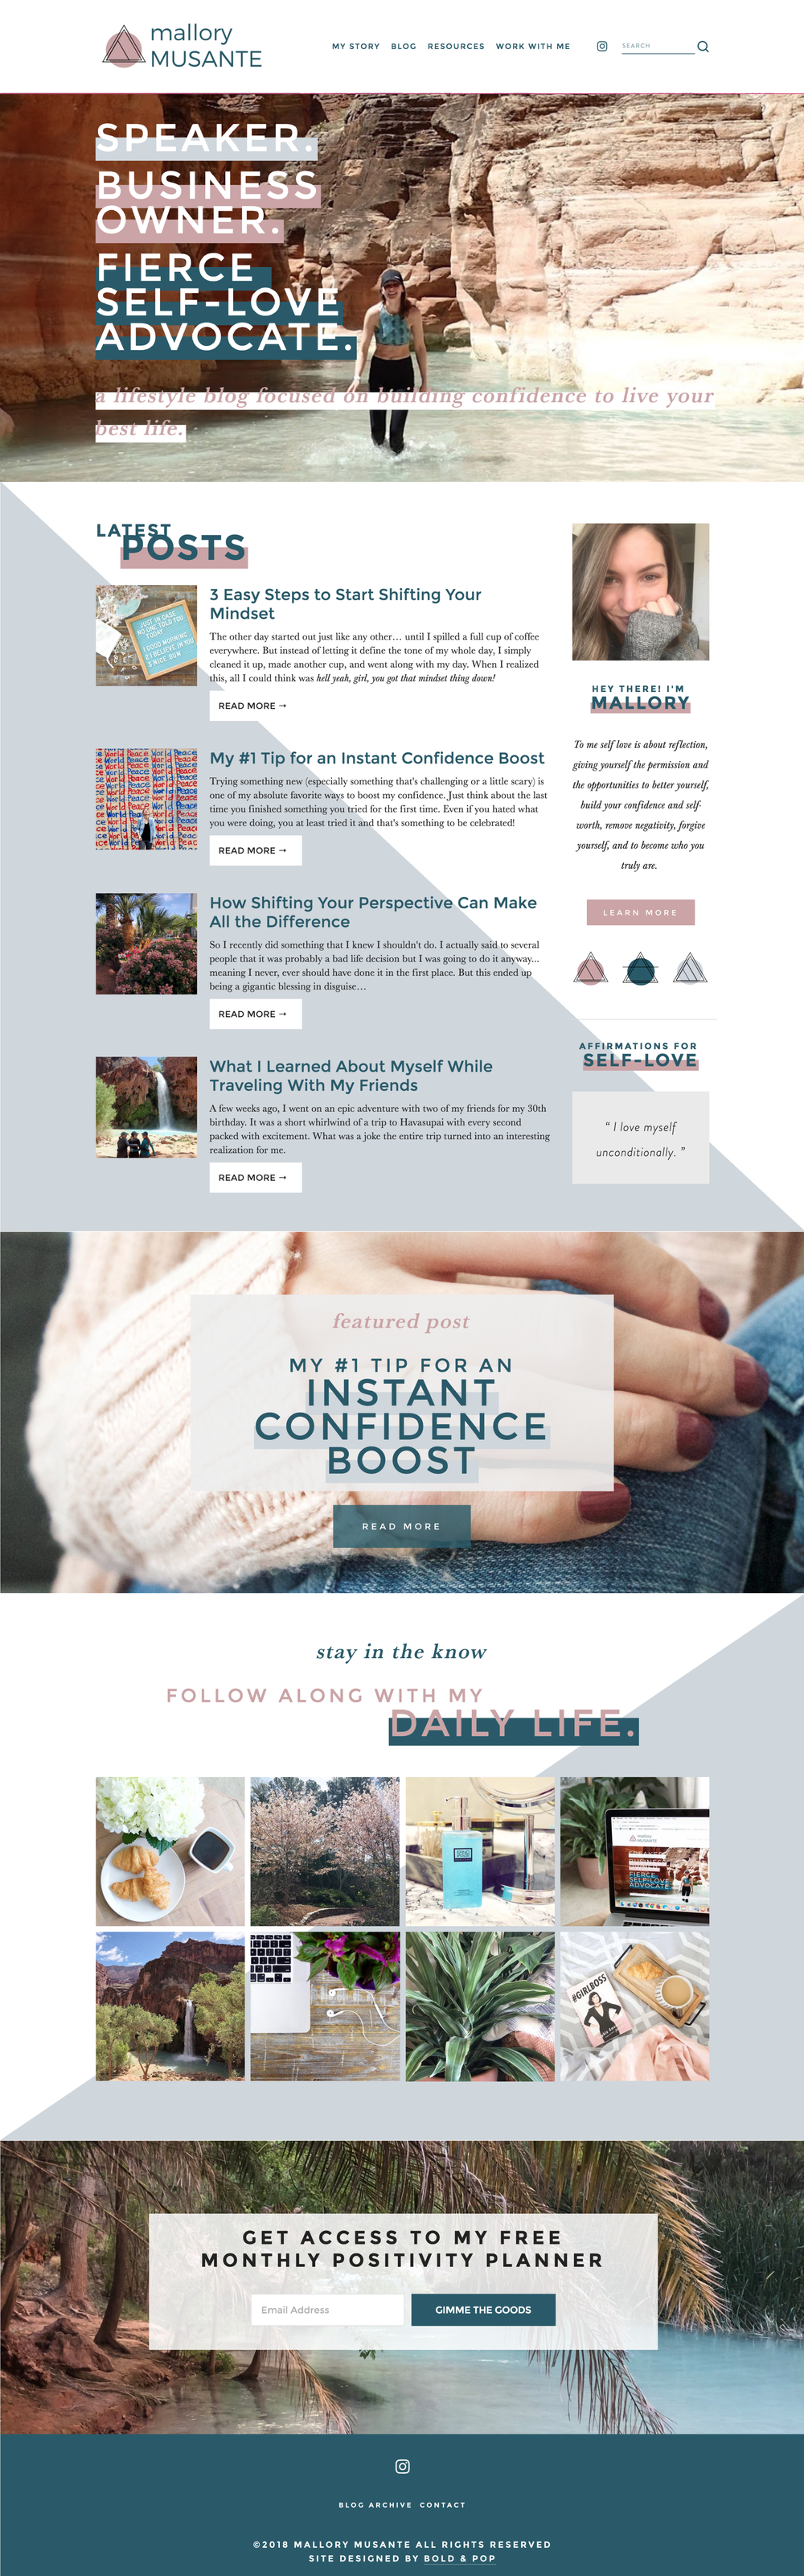 Bold+&+Pop+_+Mallory+Musante+Branding+&+Squarespace+Website+Design.png